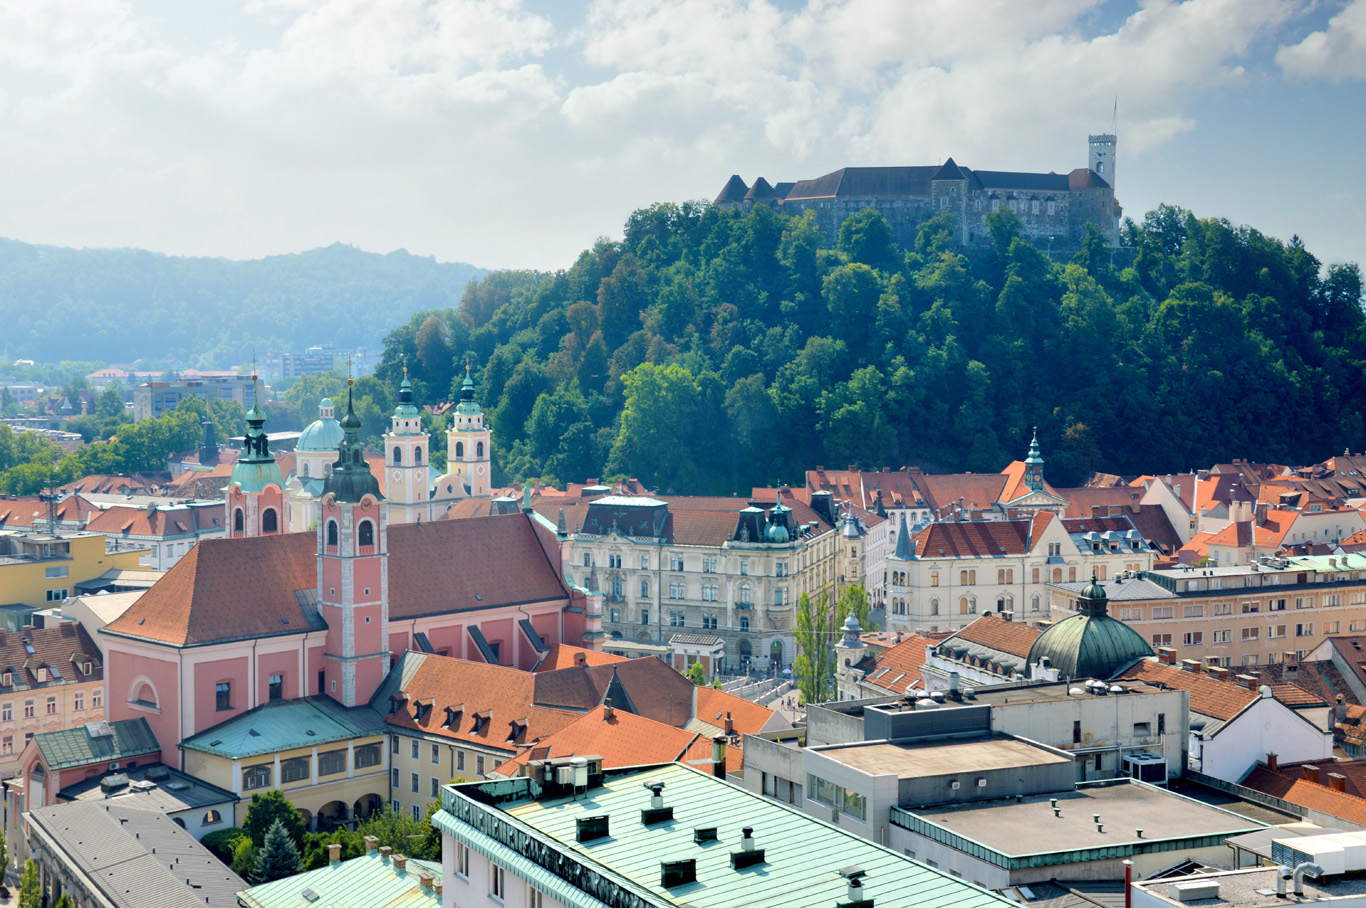 View from Neboticnik - the castle and the old town